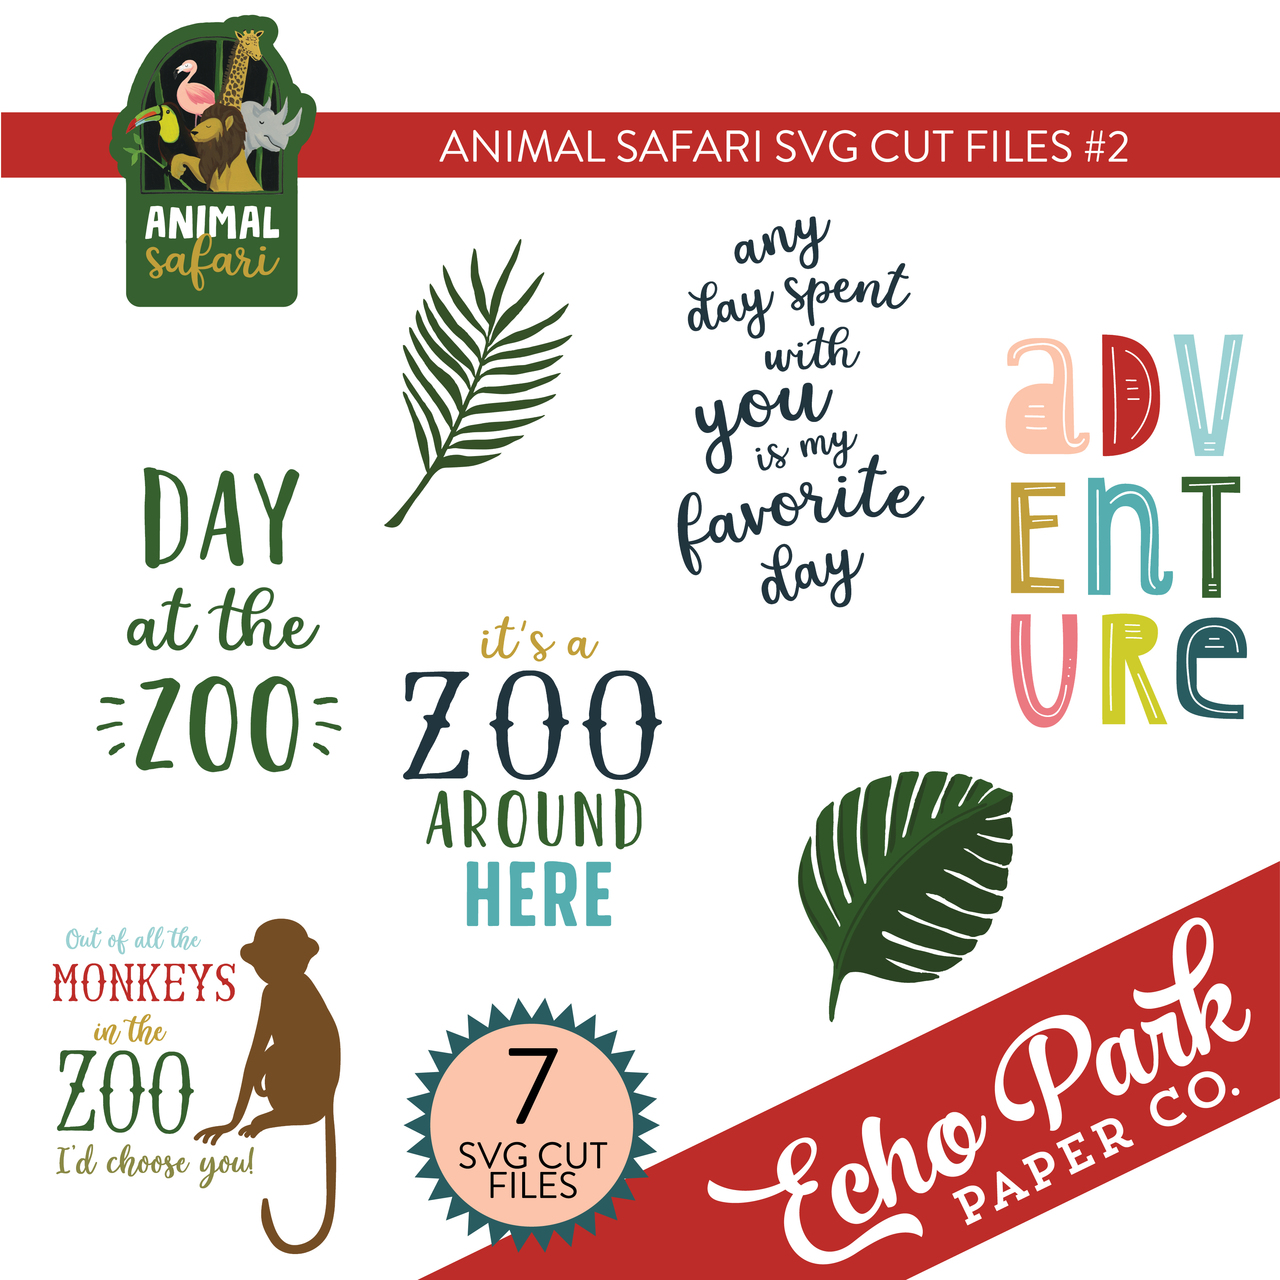 Animal Safari SVG Cut Files #2